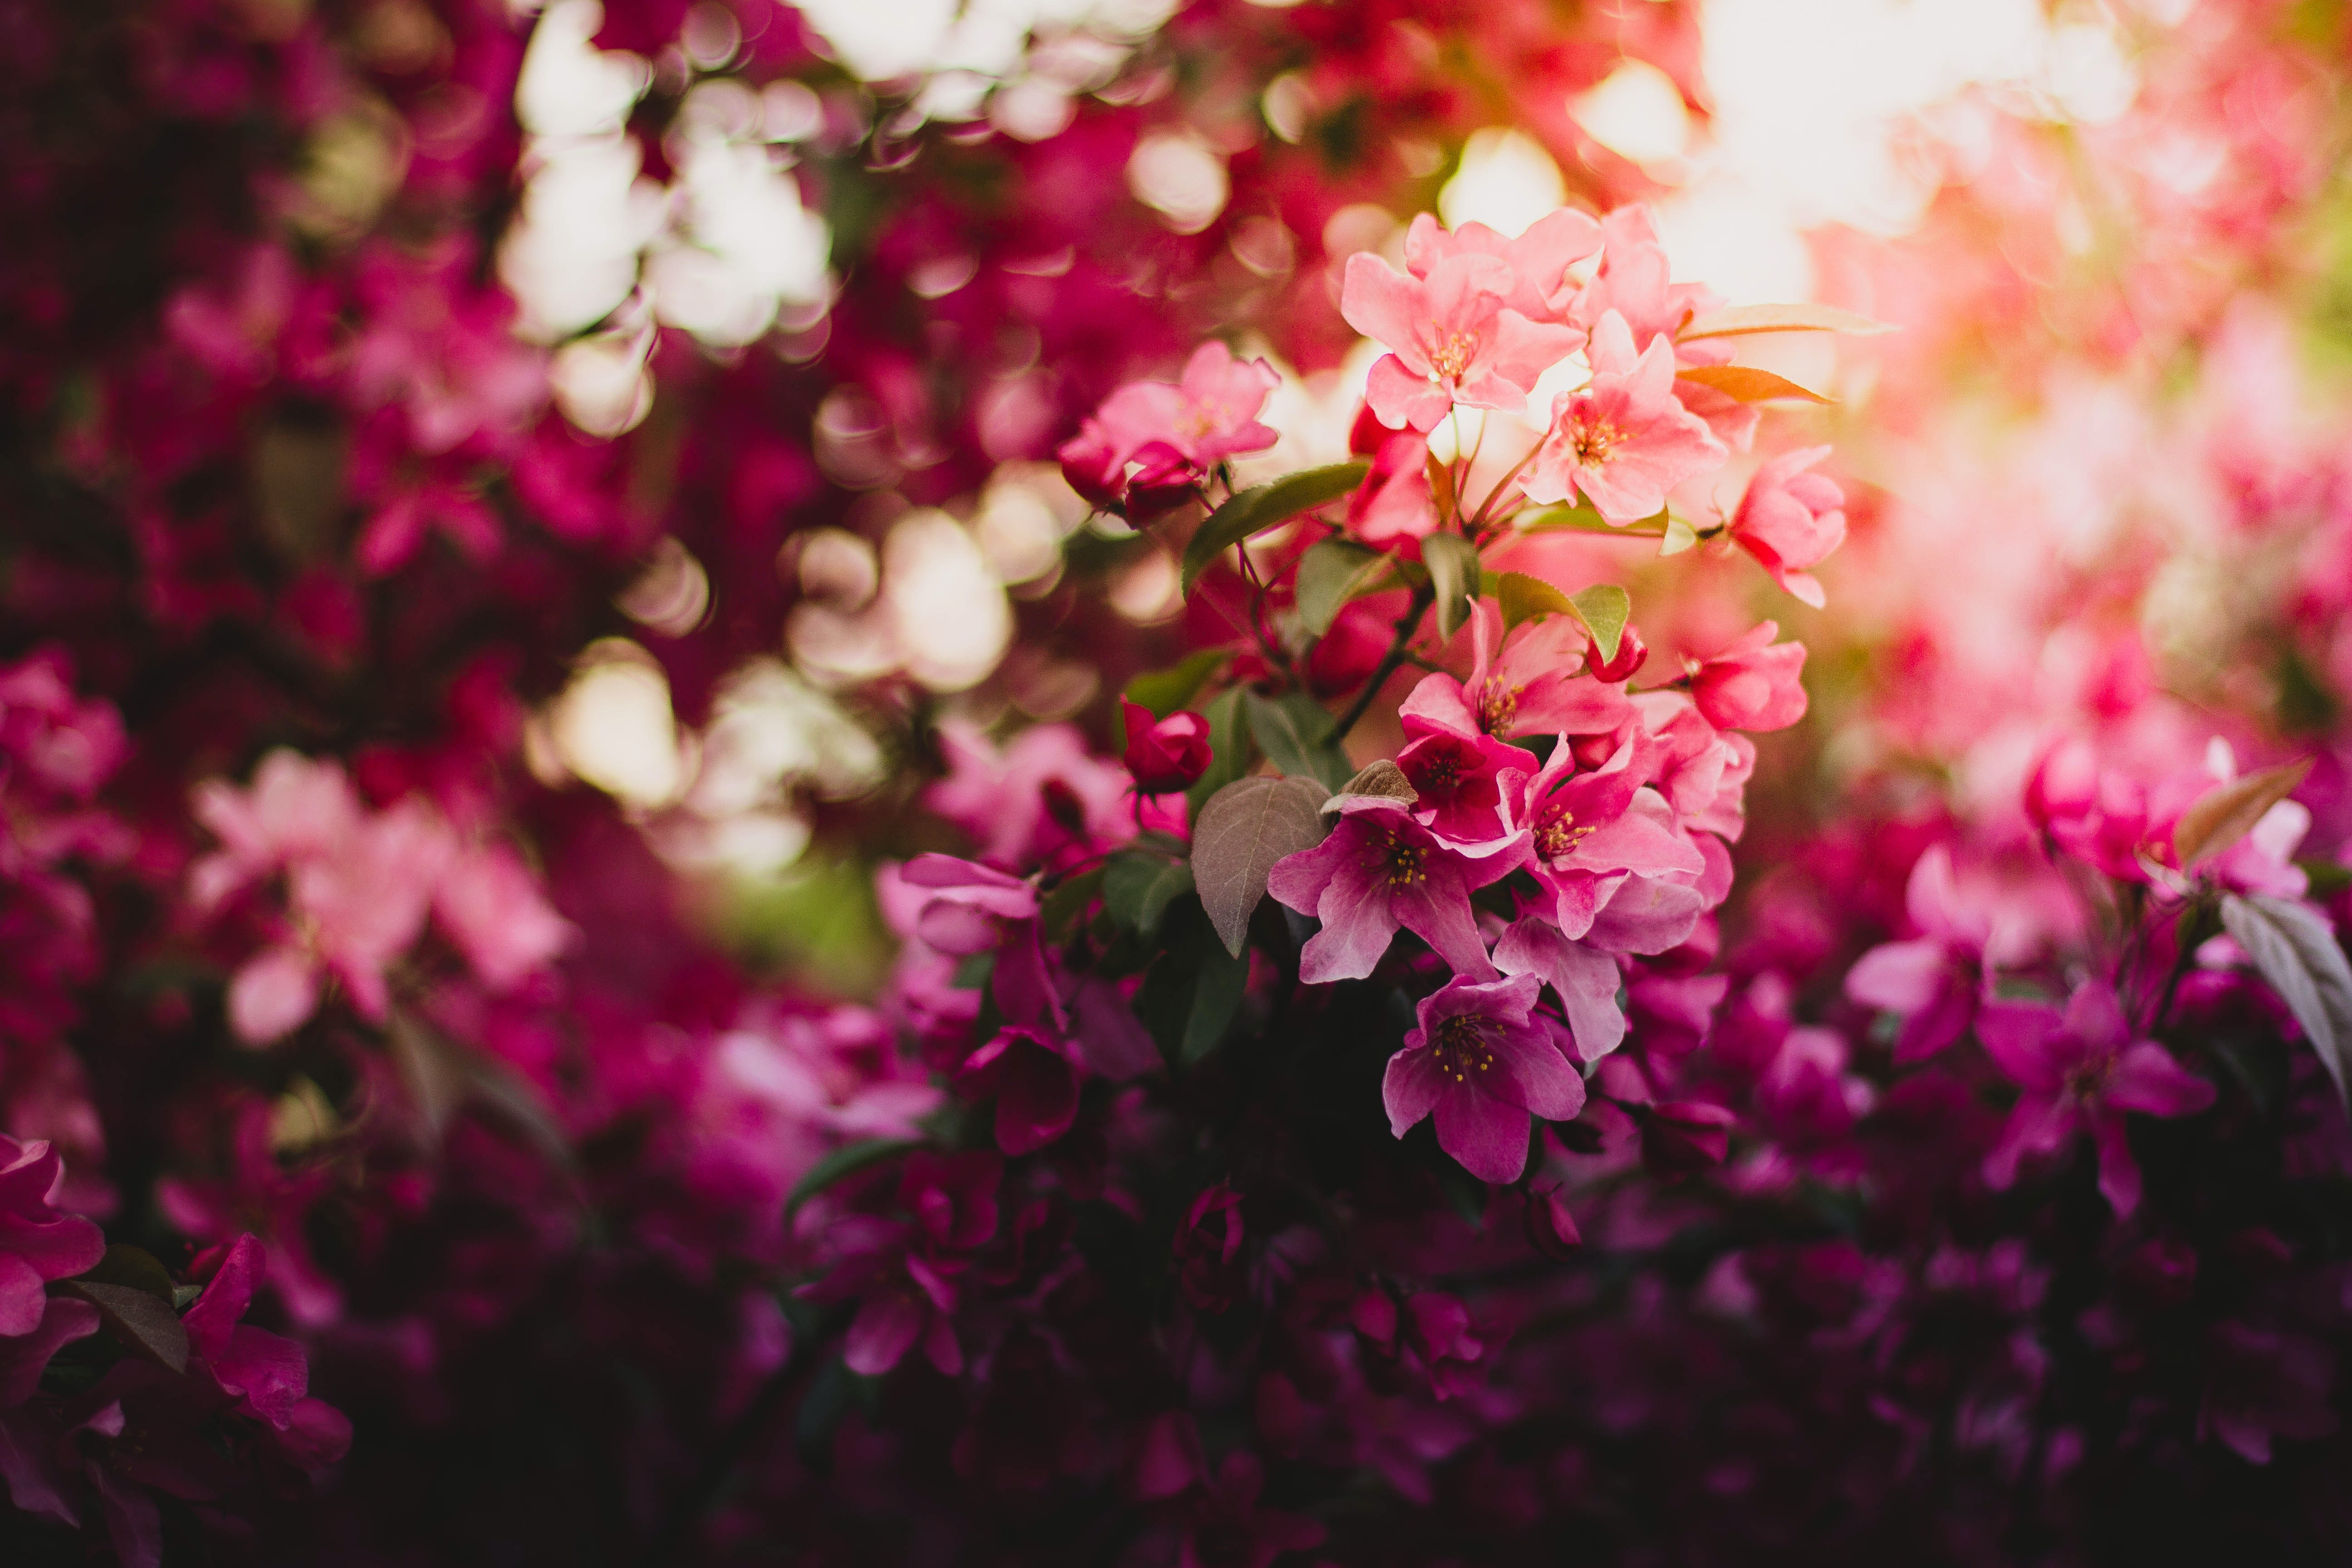 Pink Green And Purple Flowers During Daytime Free Stock Photo